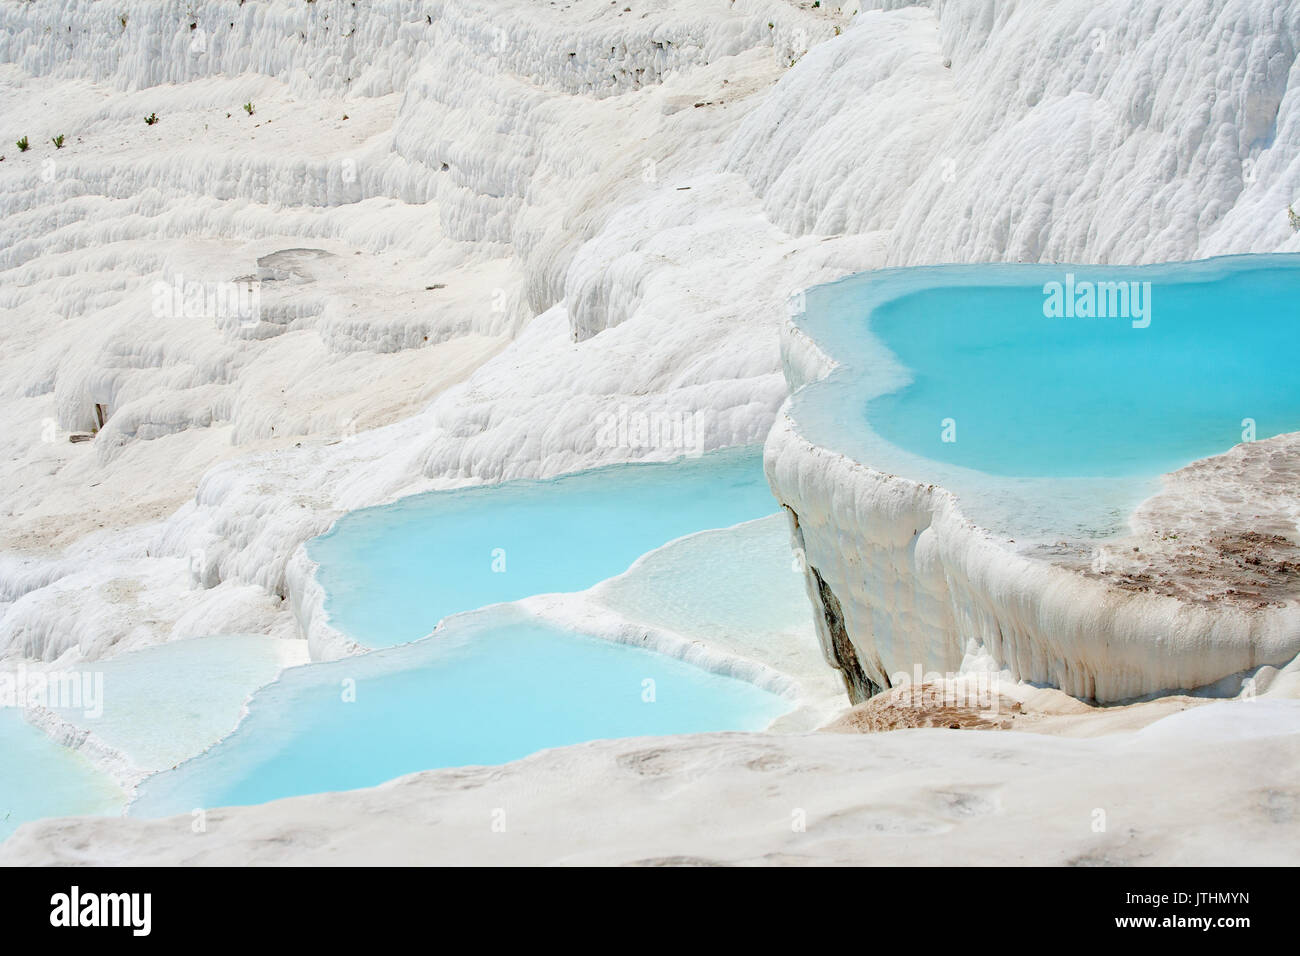 Natural Pamukkale basins full of water - Stock Image